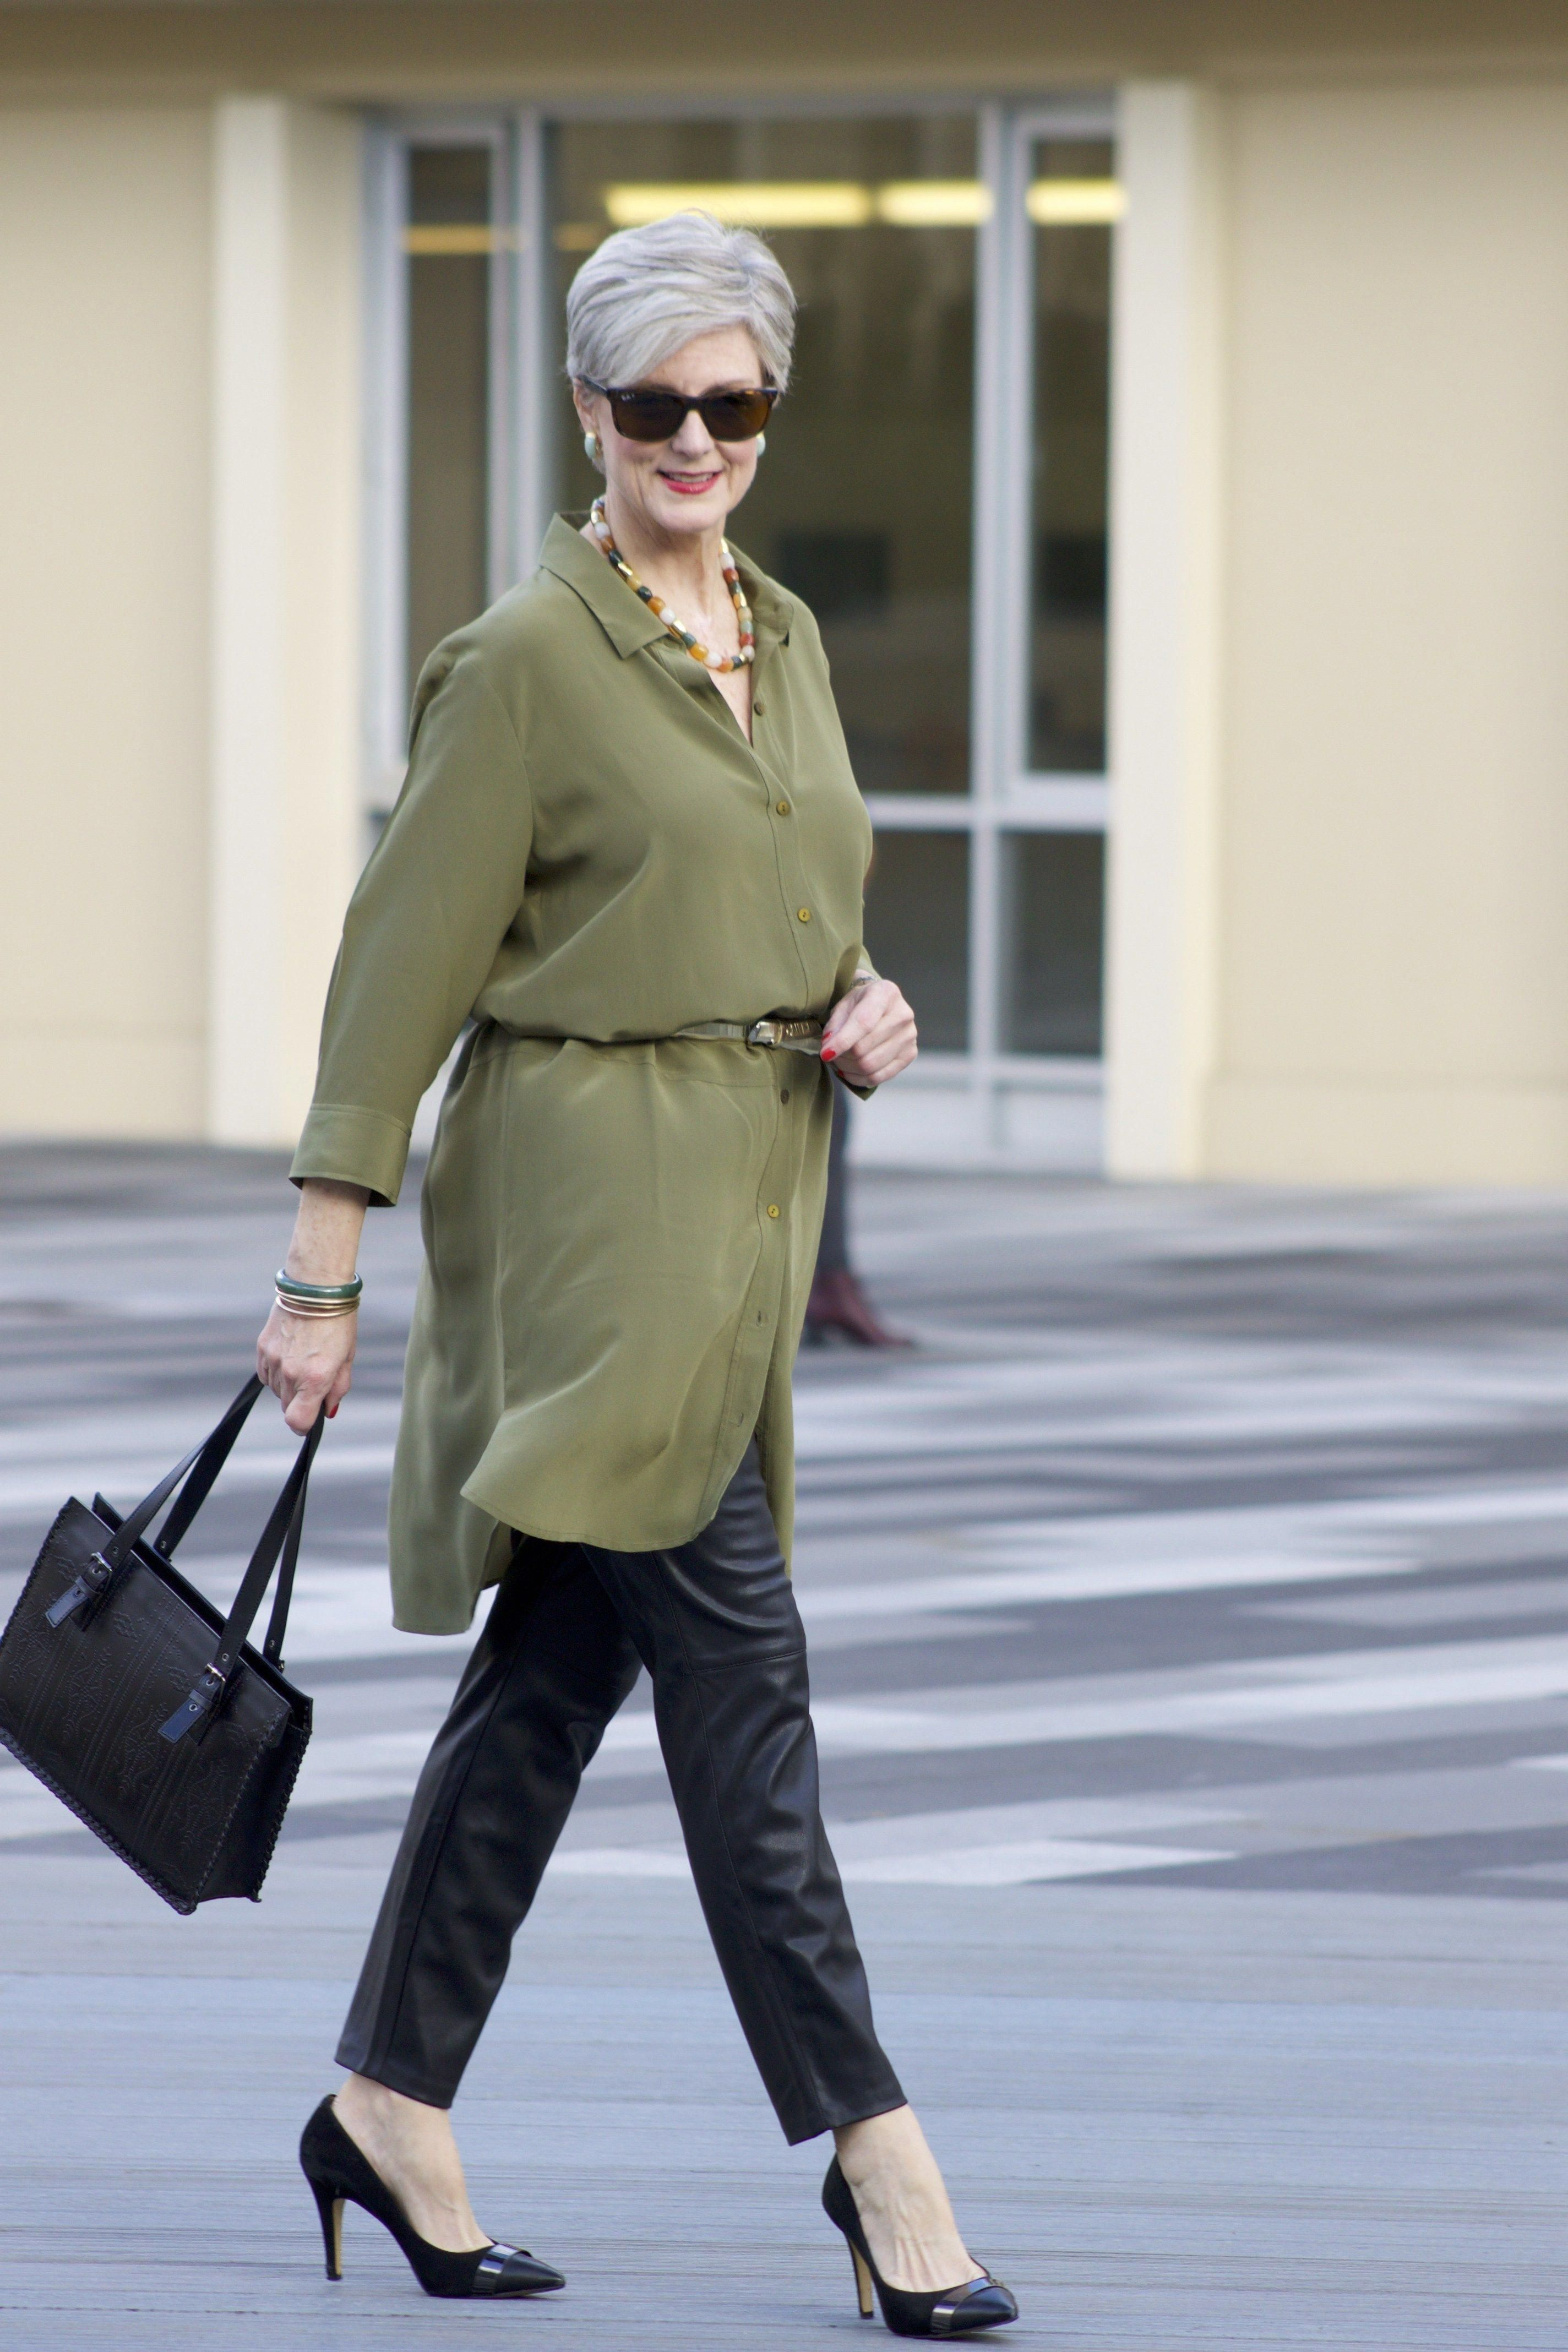 Fashion Over Fifty Style | Outfits For Women 50 | Where To Buy Clothes For Over 50 #WomensFashionEdgy